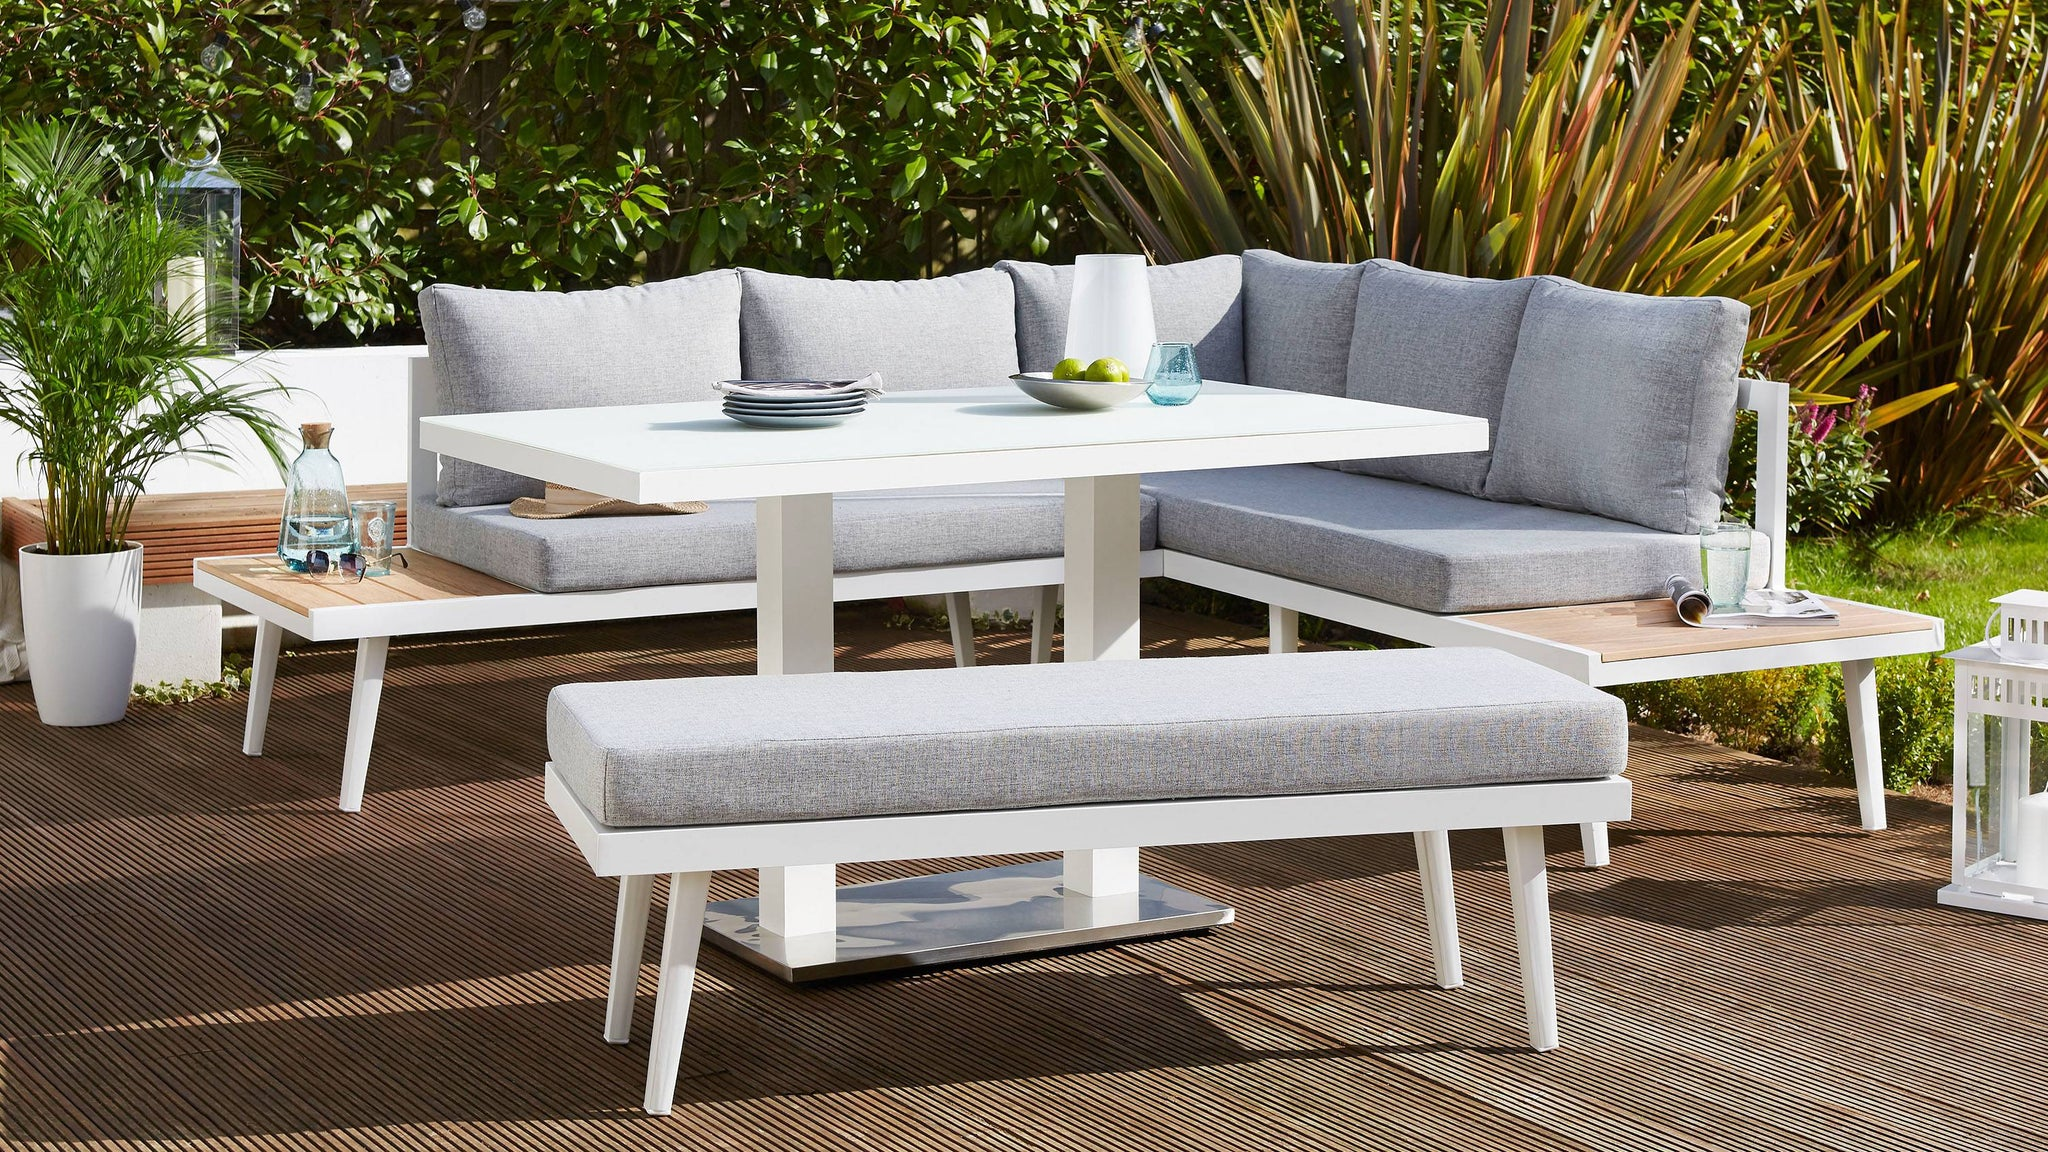 4 seater outdoor table